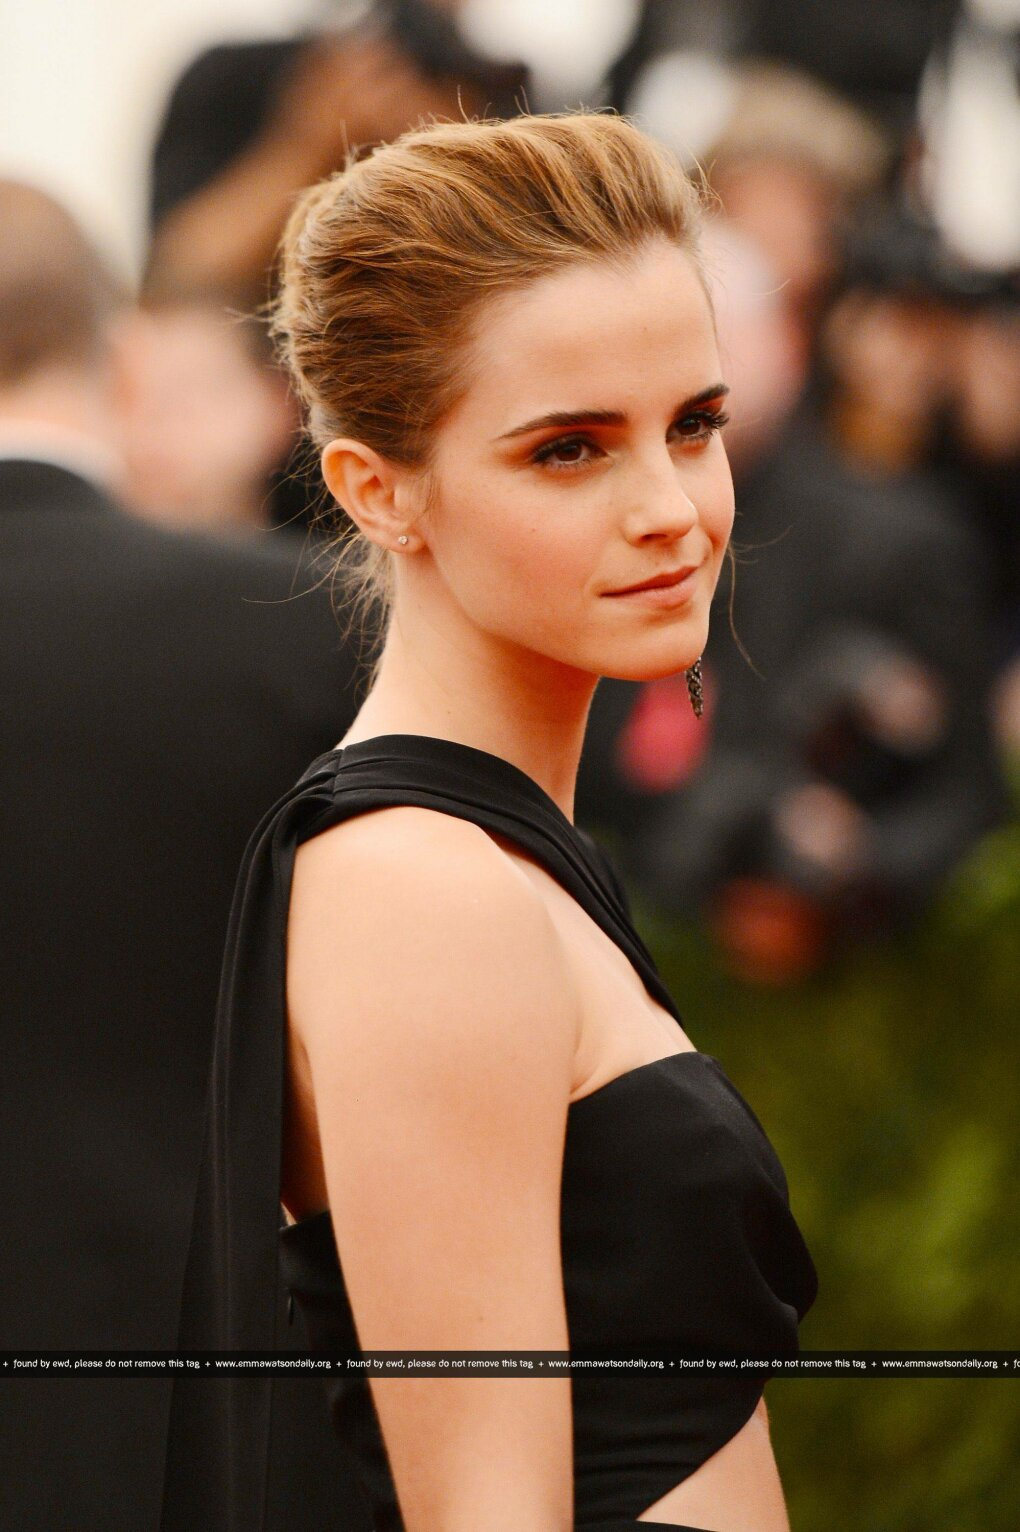 yp6rygr - the sexiest photos of emma watson's body (30+ photos)